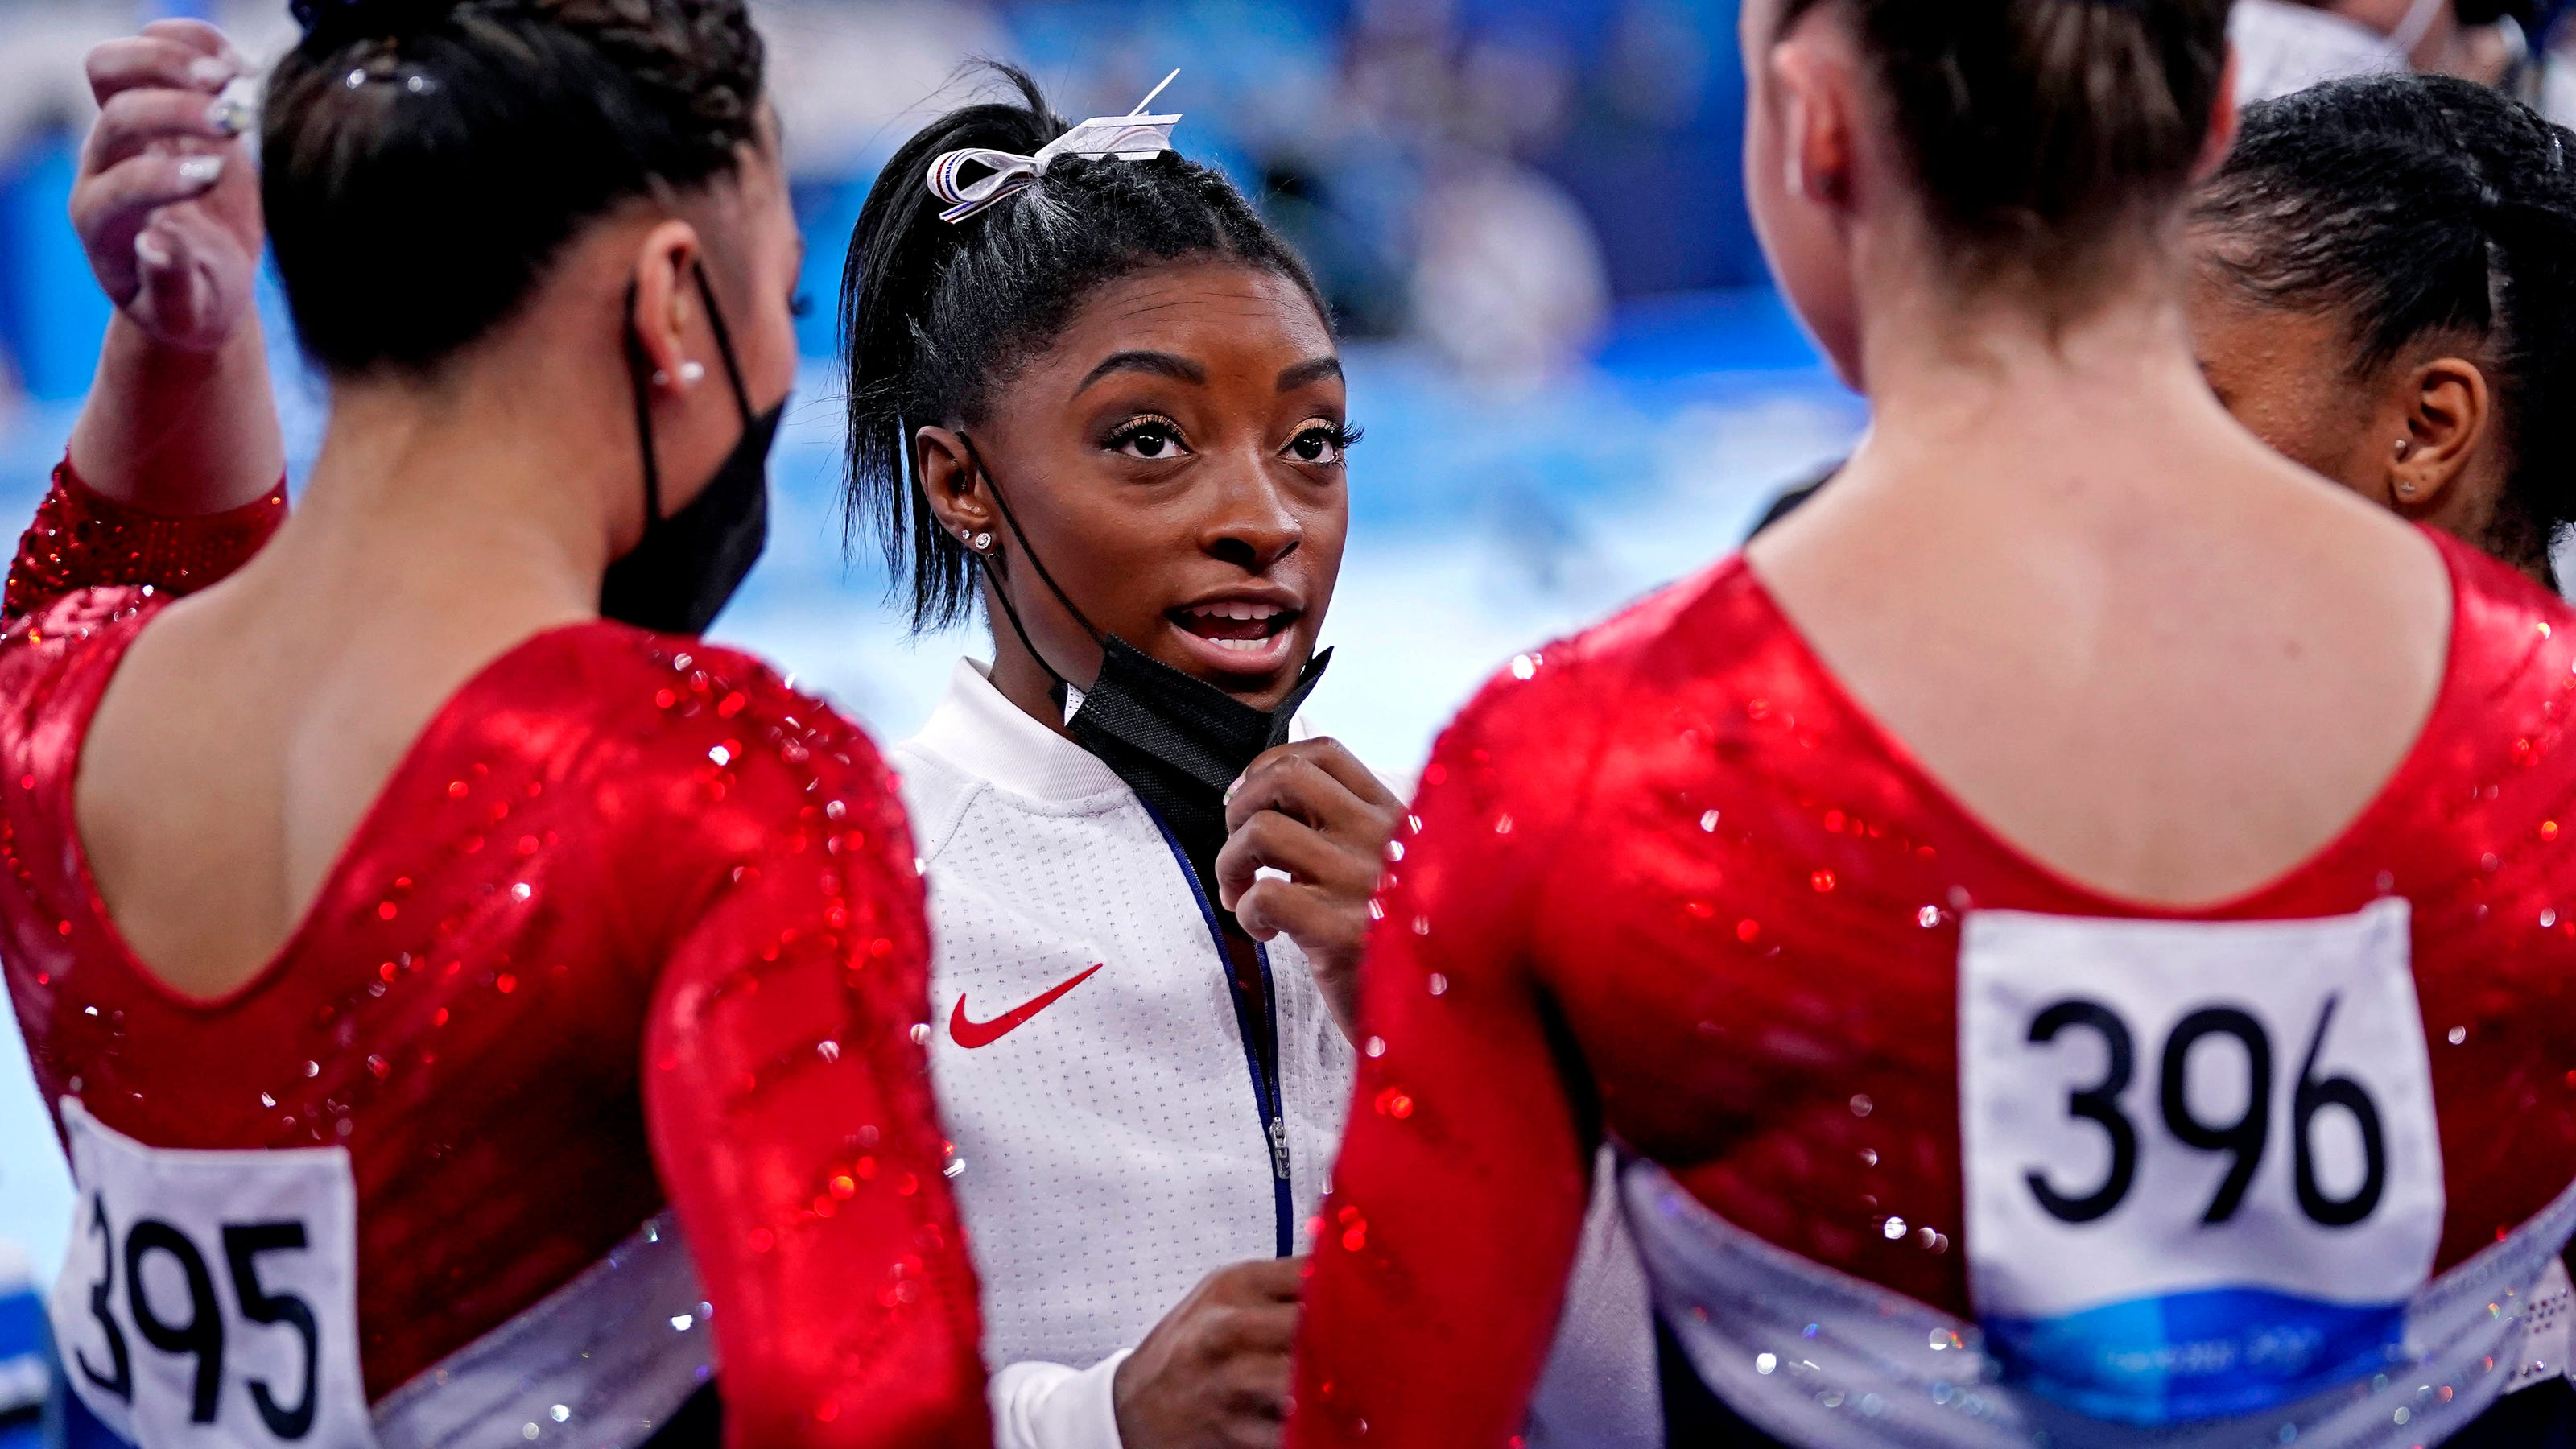 Live updates from Tokyo Olympics: US women's gymnastics team wins silver after Simone Biles withdraws